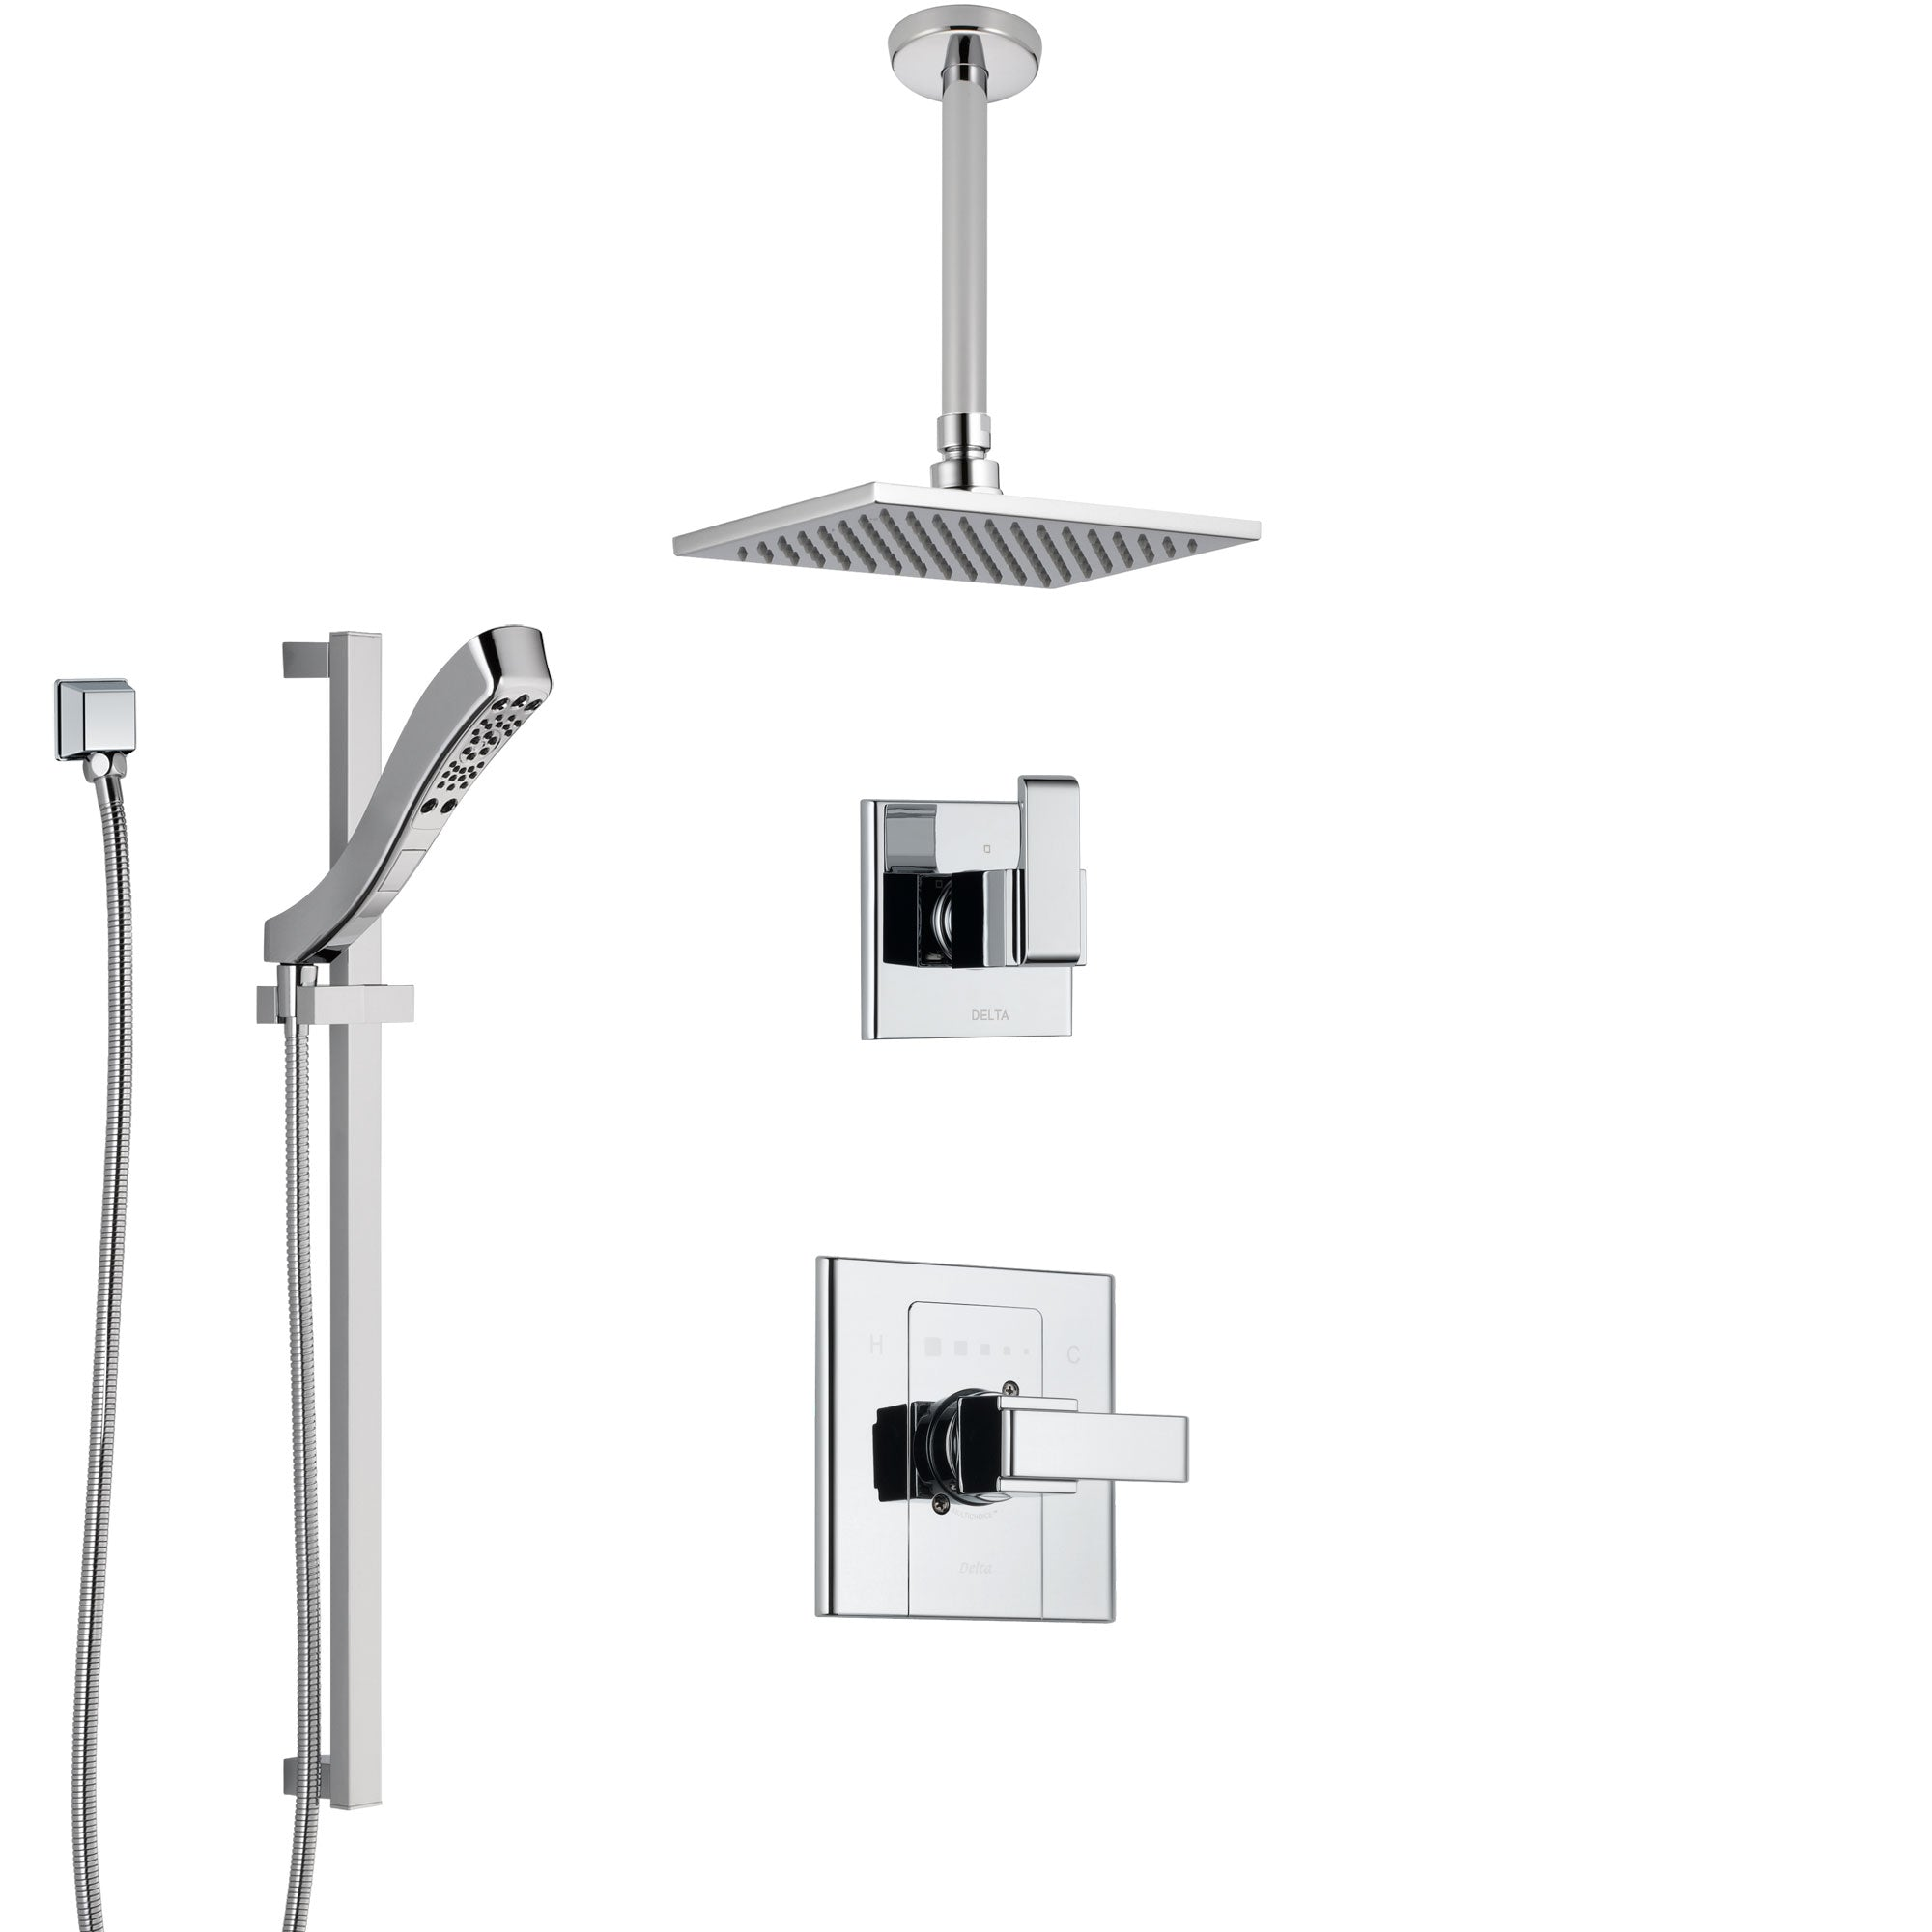 Delta Arzo Chrome Finish Shower System with Control Handle, 3-Setting Diverter, Ceiling Mount Showerhead, and Hand Shower with Slidebar SS14865